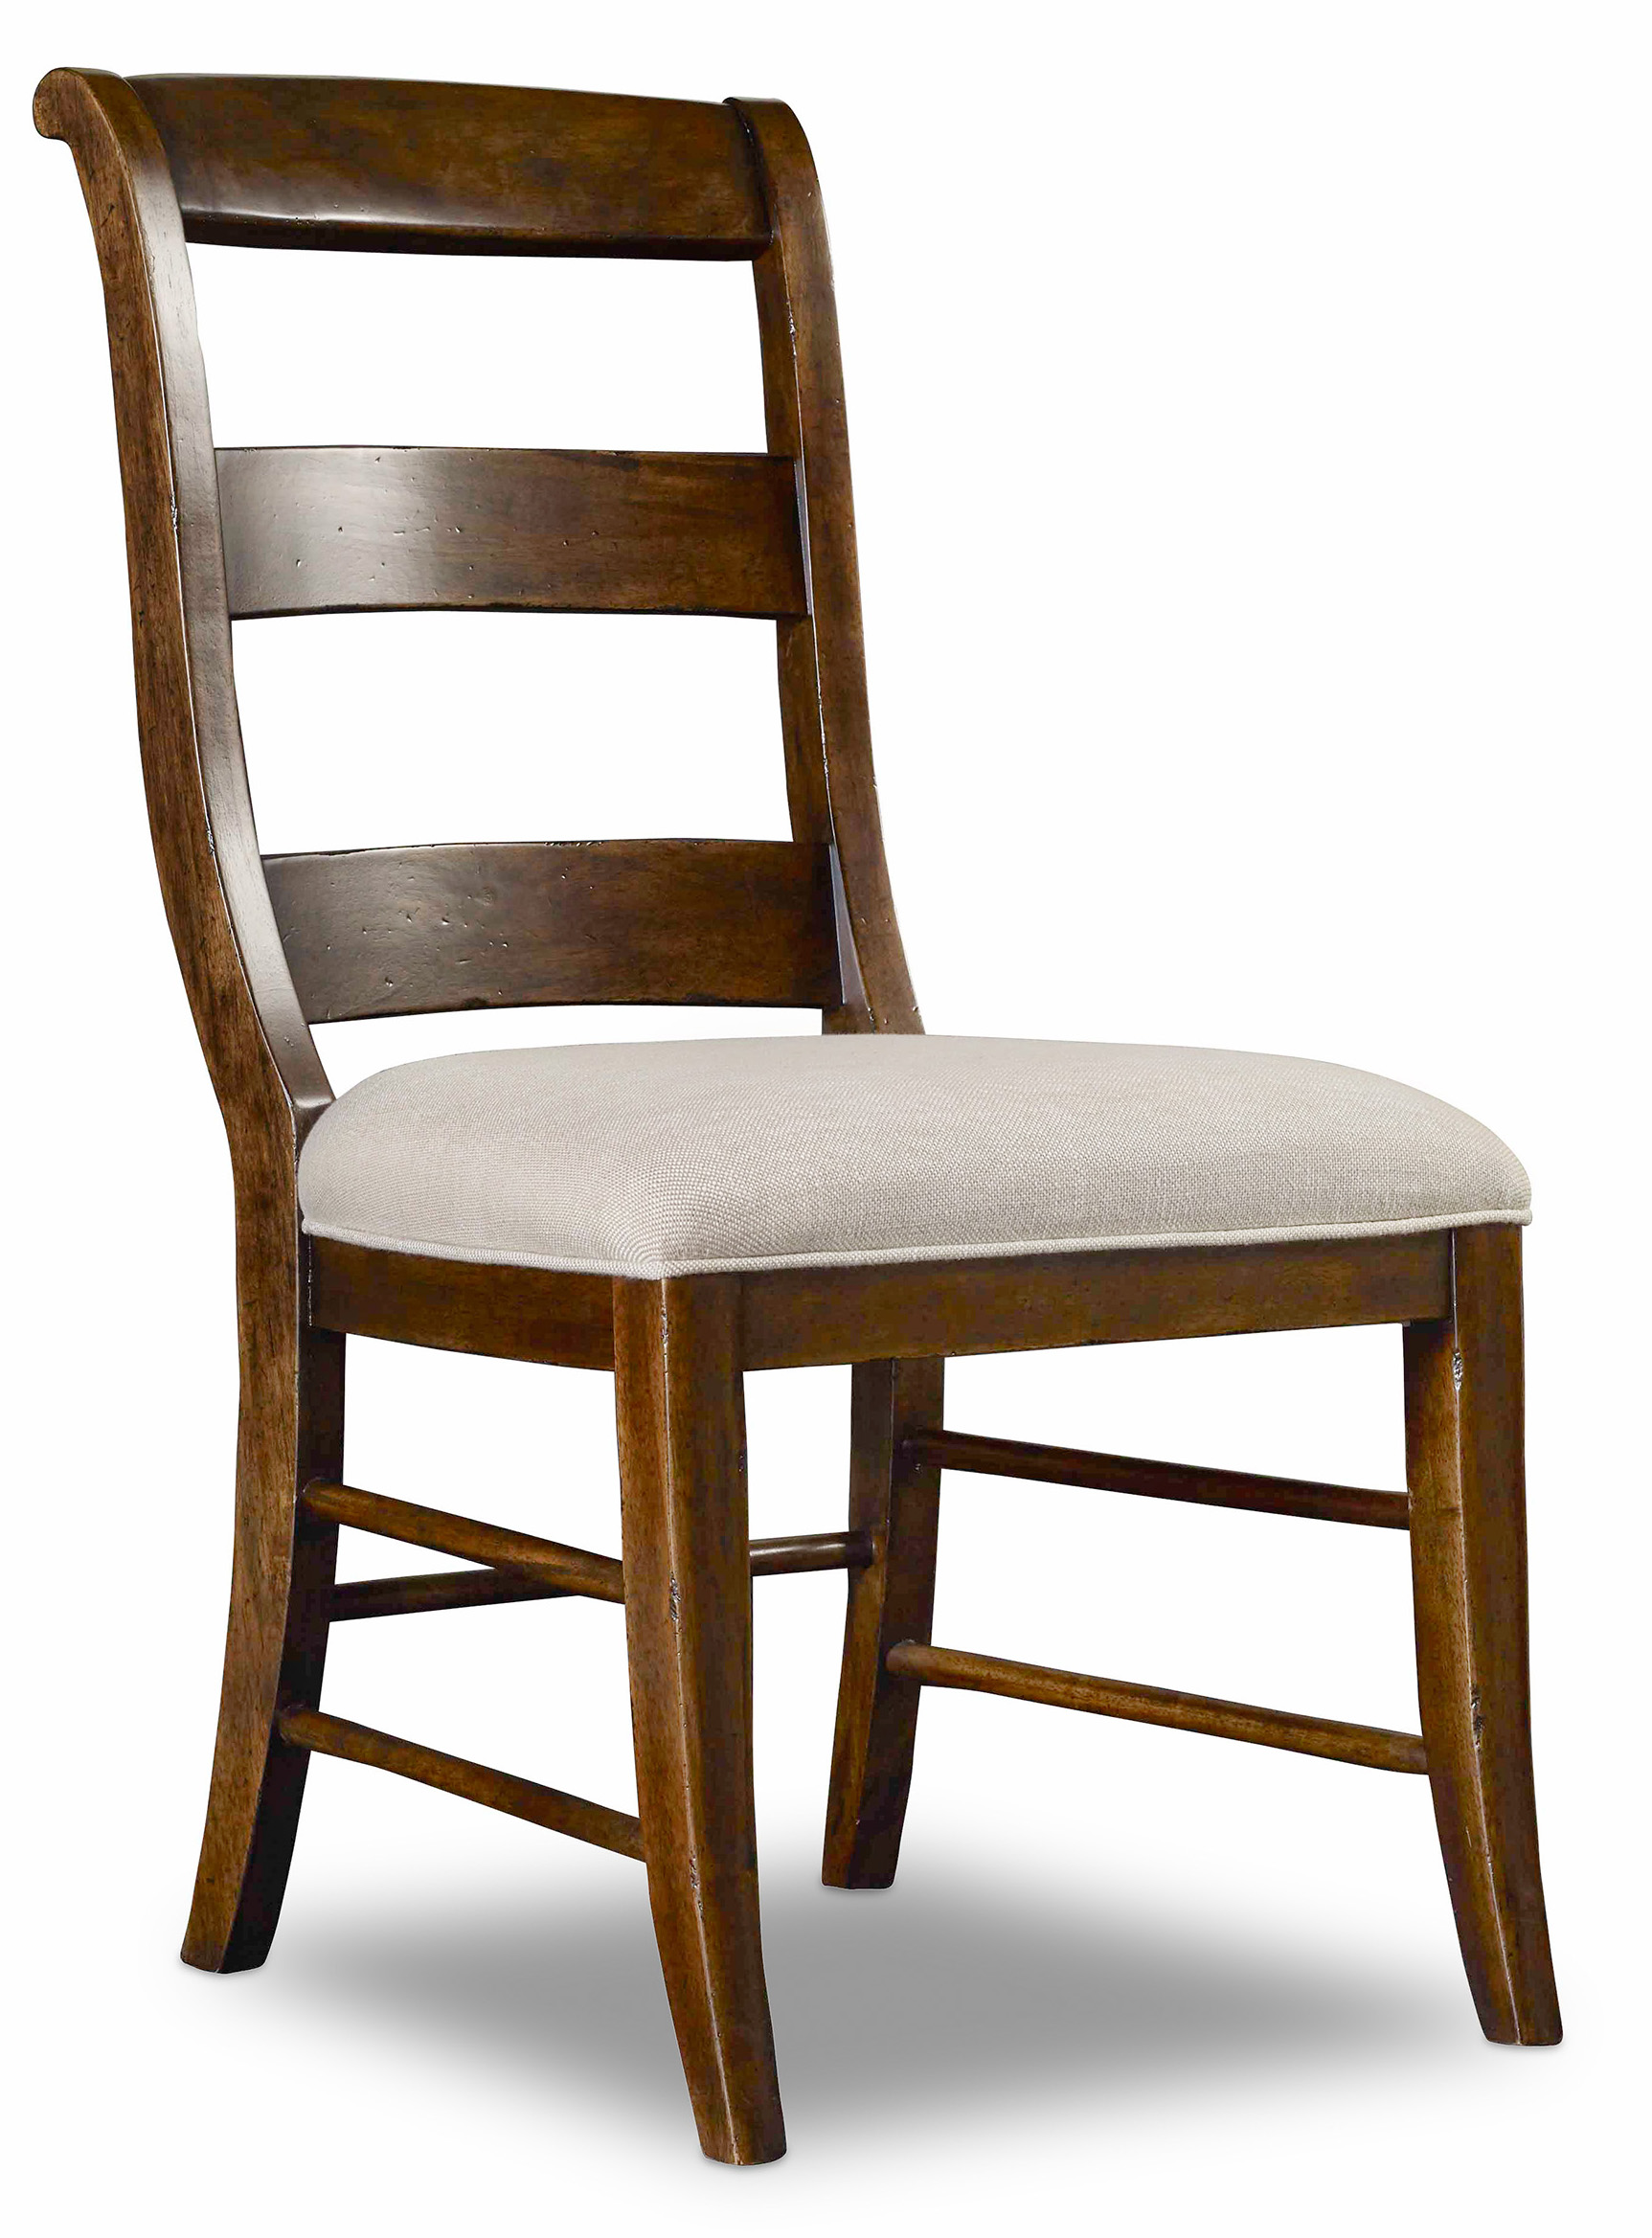 Hooker Furniture Archivist Ladderback Side Chair - Item Number: 5447-75710